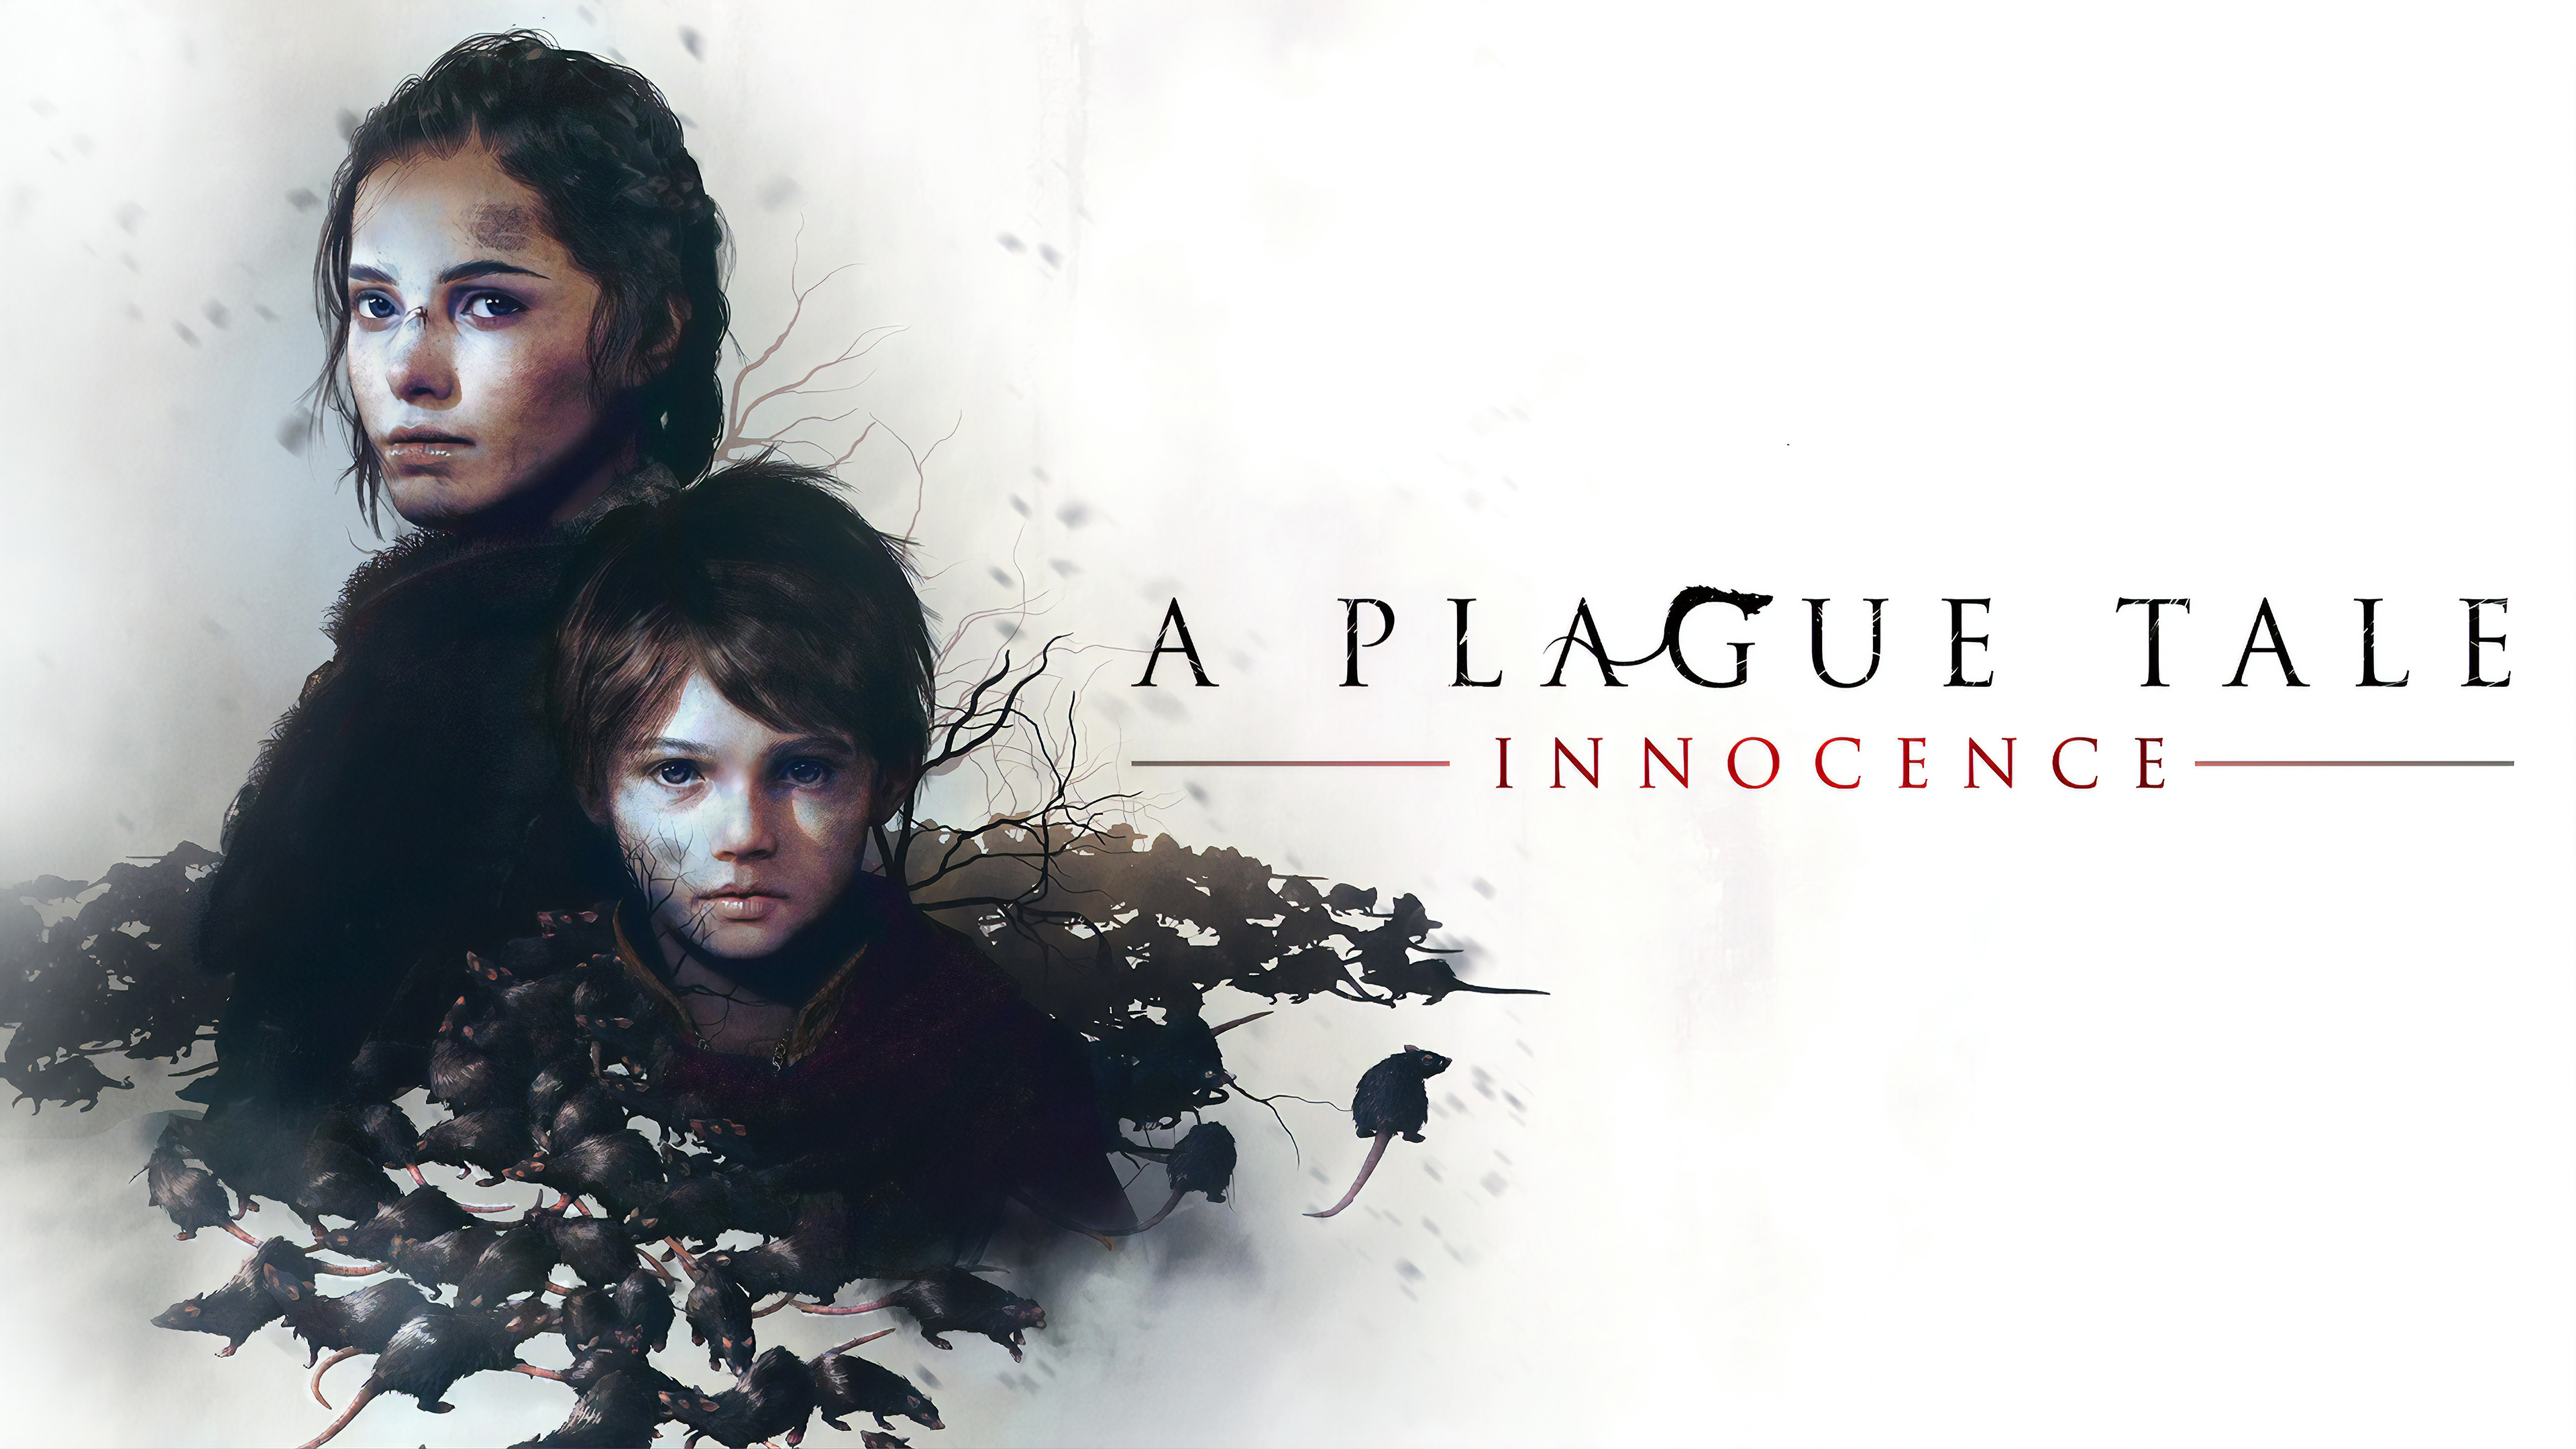 a plague tale innocence 1559798067 - A Plague Tale Innocence - xbox games wallpapers, ps games wallpapers, pc games wallpapers, hd-wallpapers, games wallpapers, a plague tale innocence wallpapers, 4k-wallpapers, 2019 games wallpapers